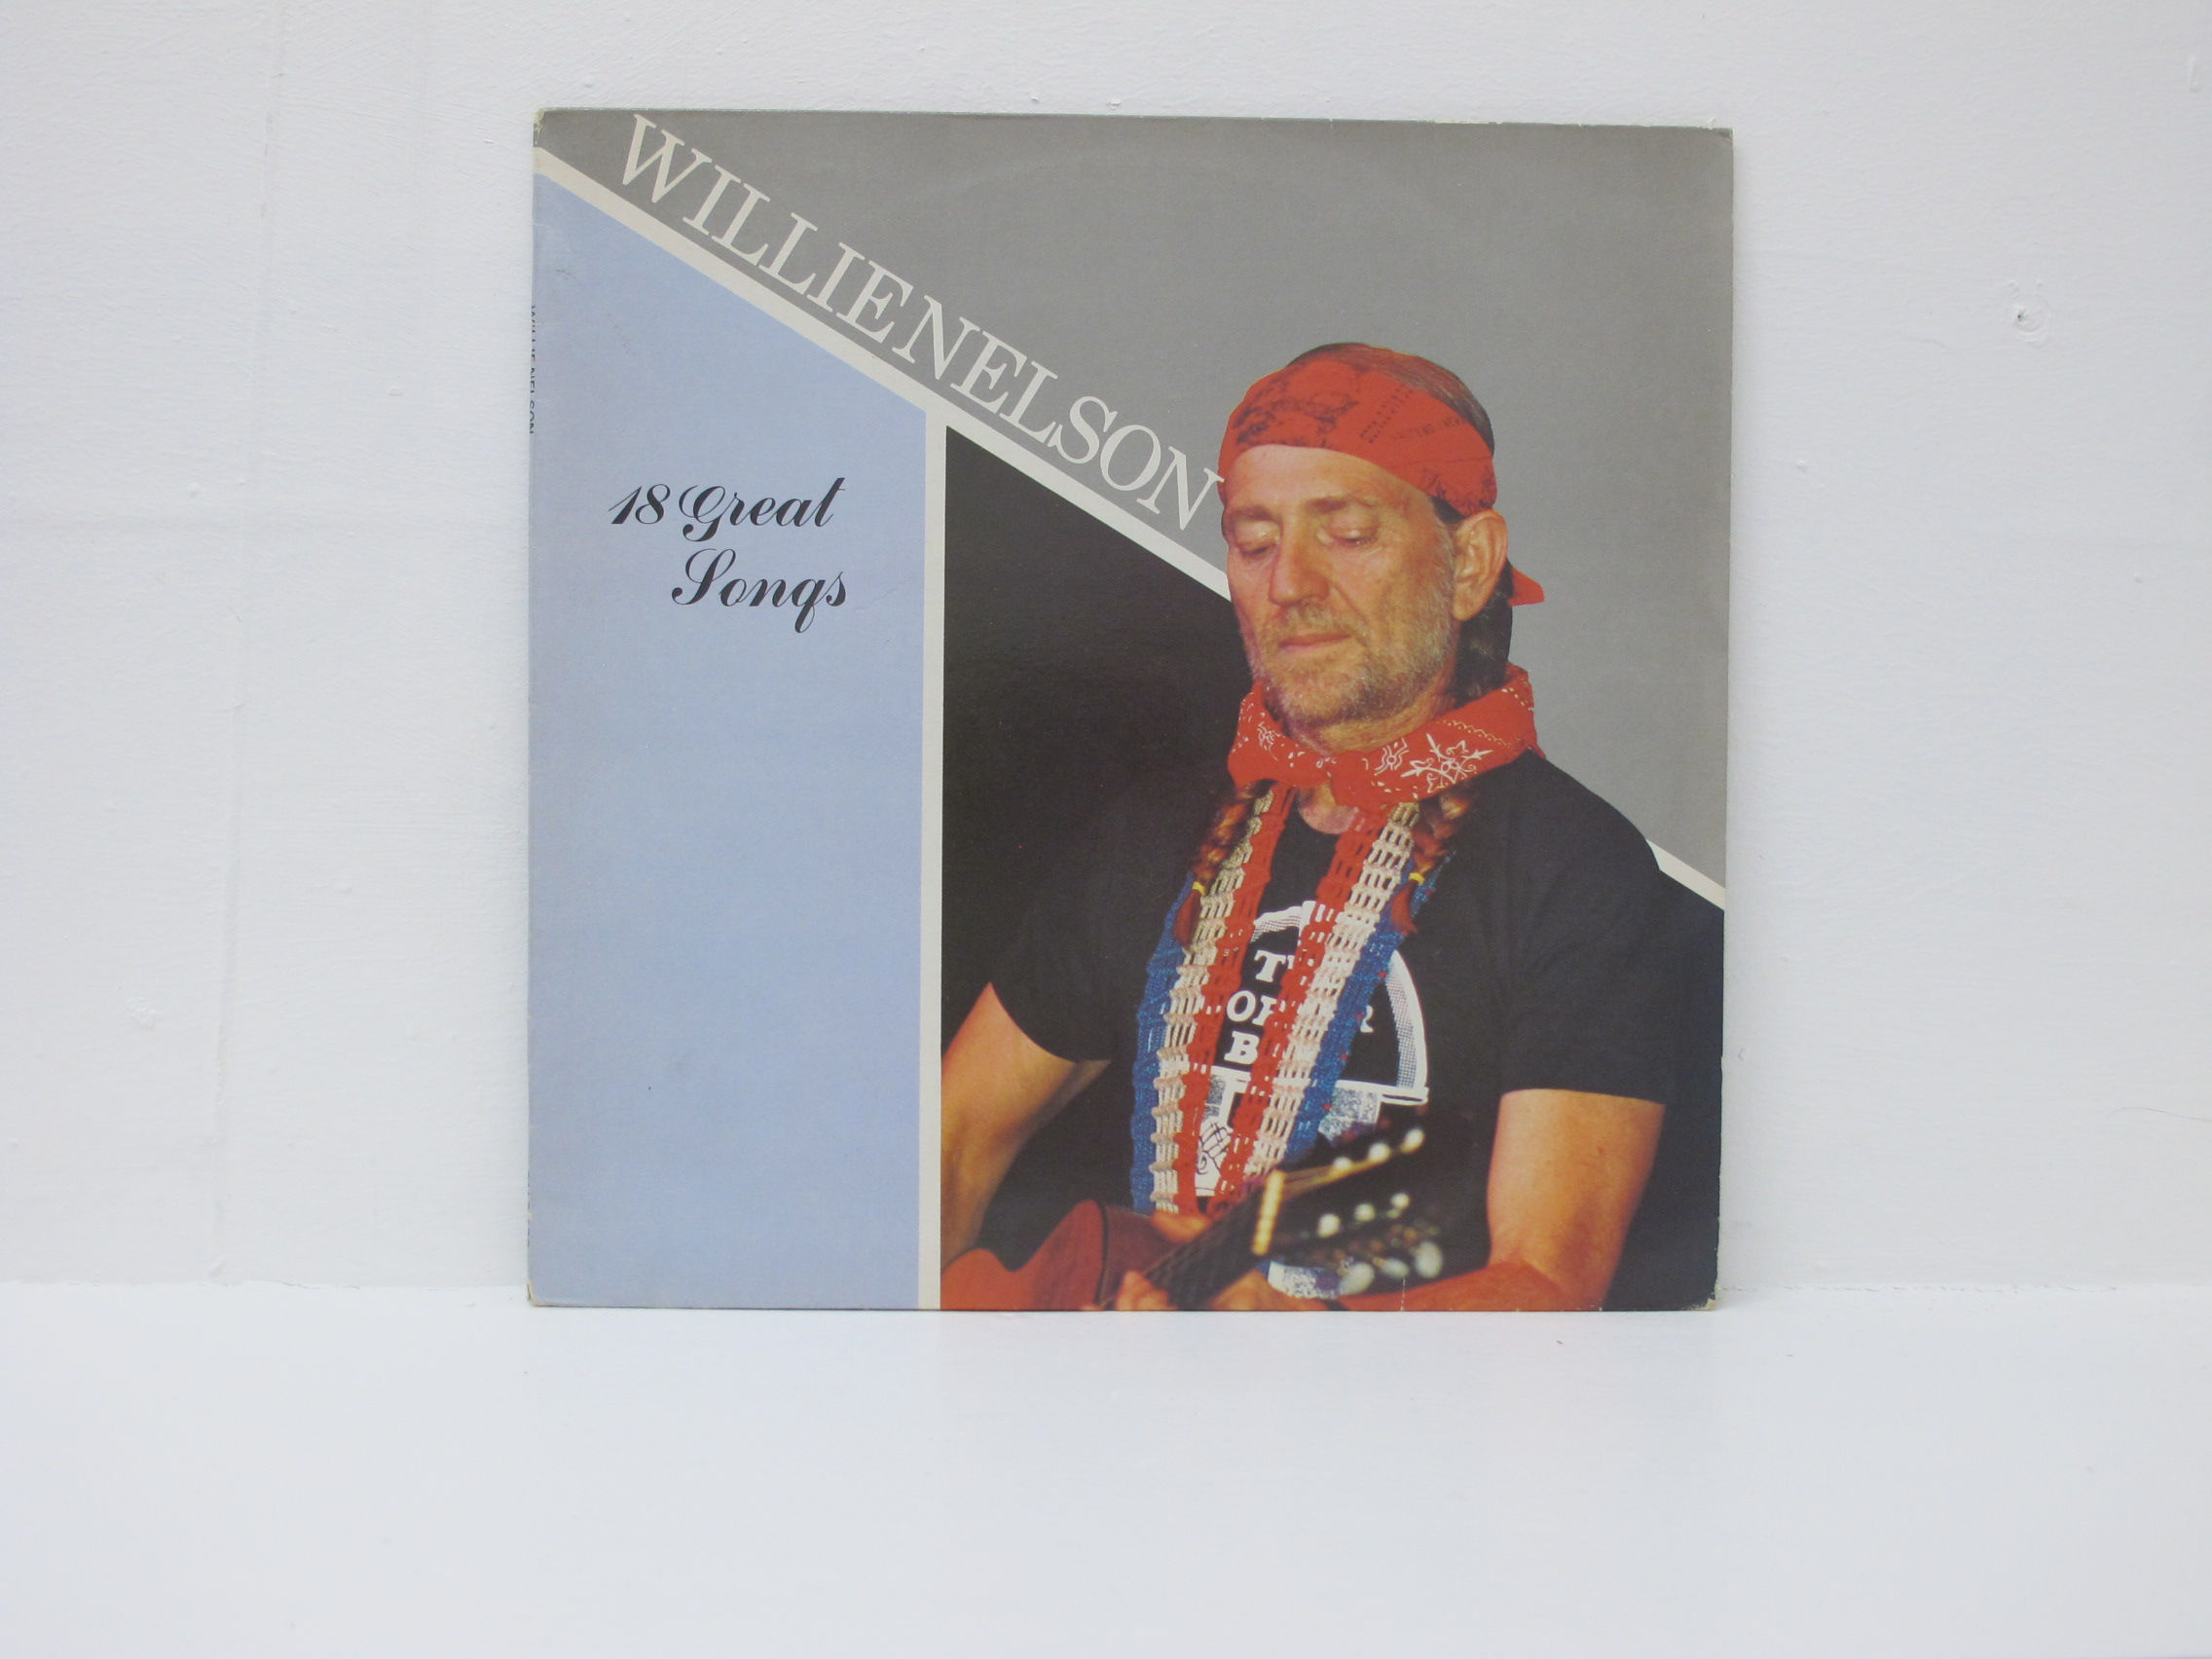 Willie Nelson - 18 Great Songs